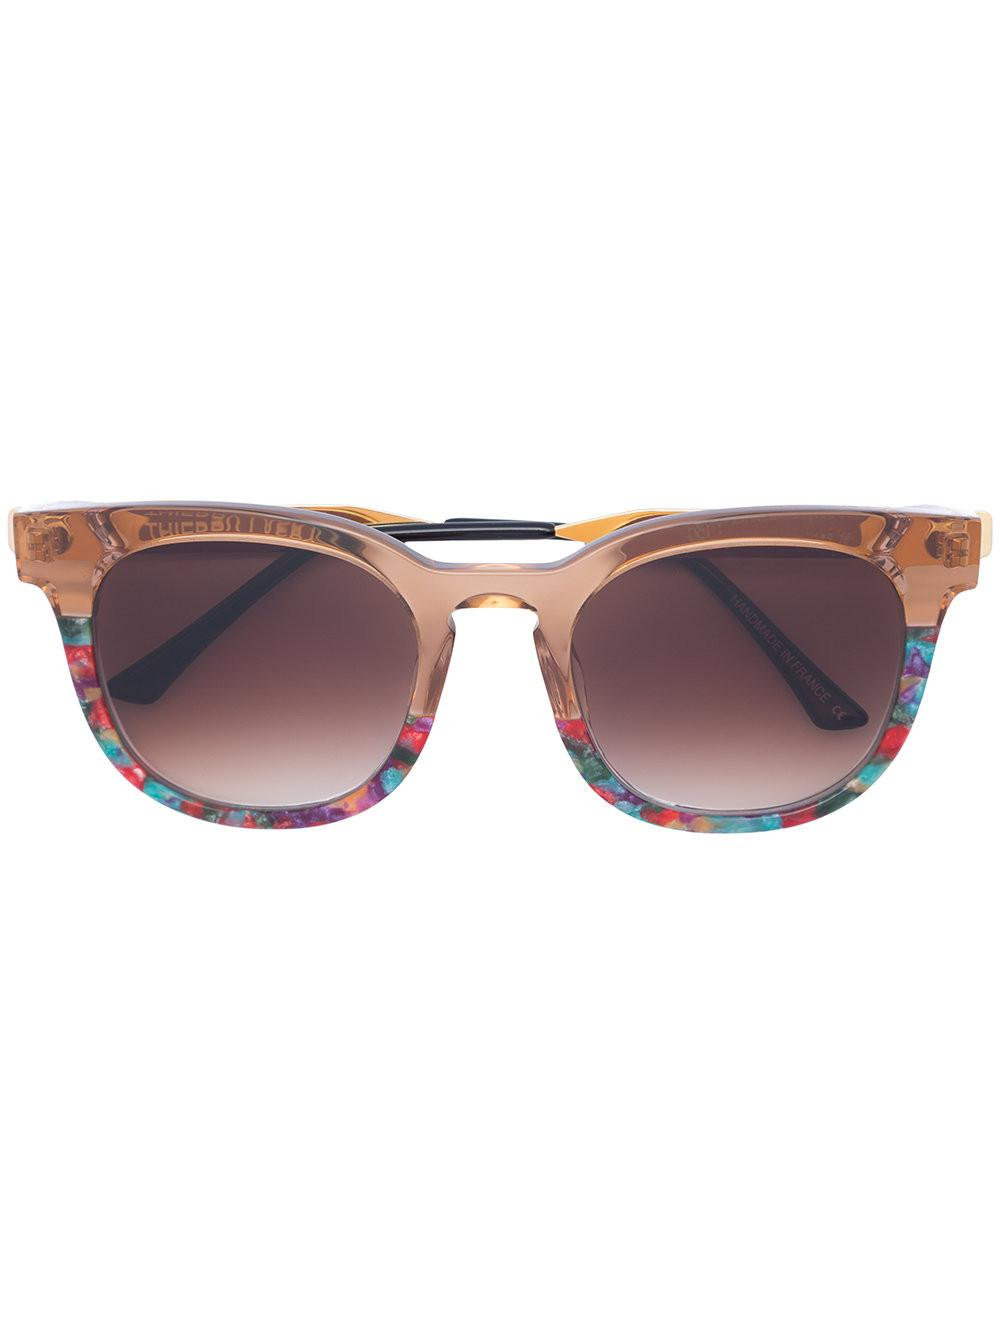 THIERRY LASRY Printed square sunglasses h9S1s6f